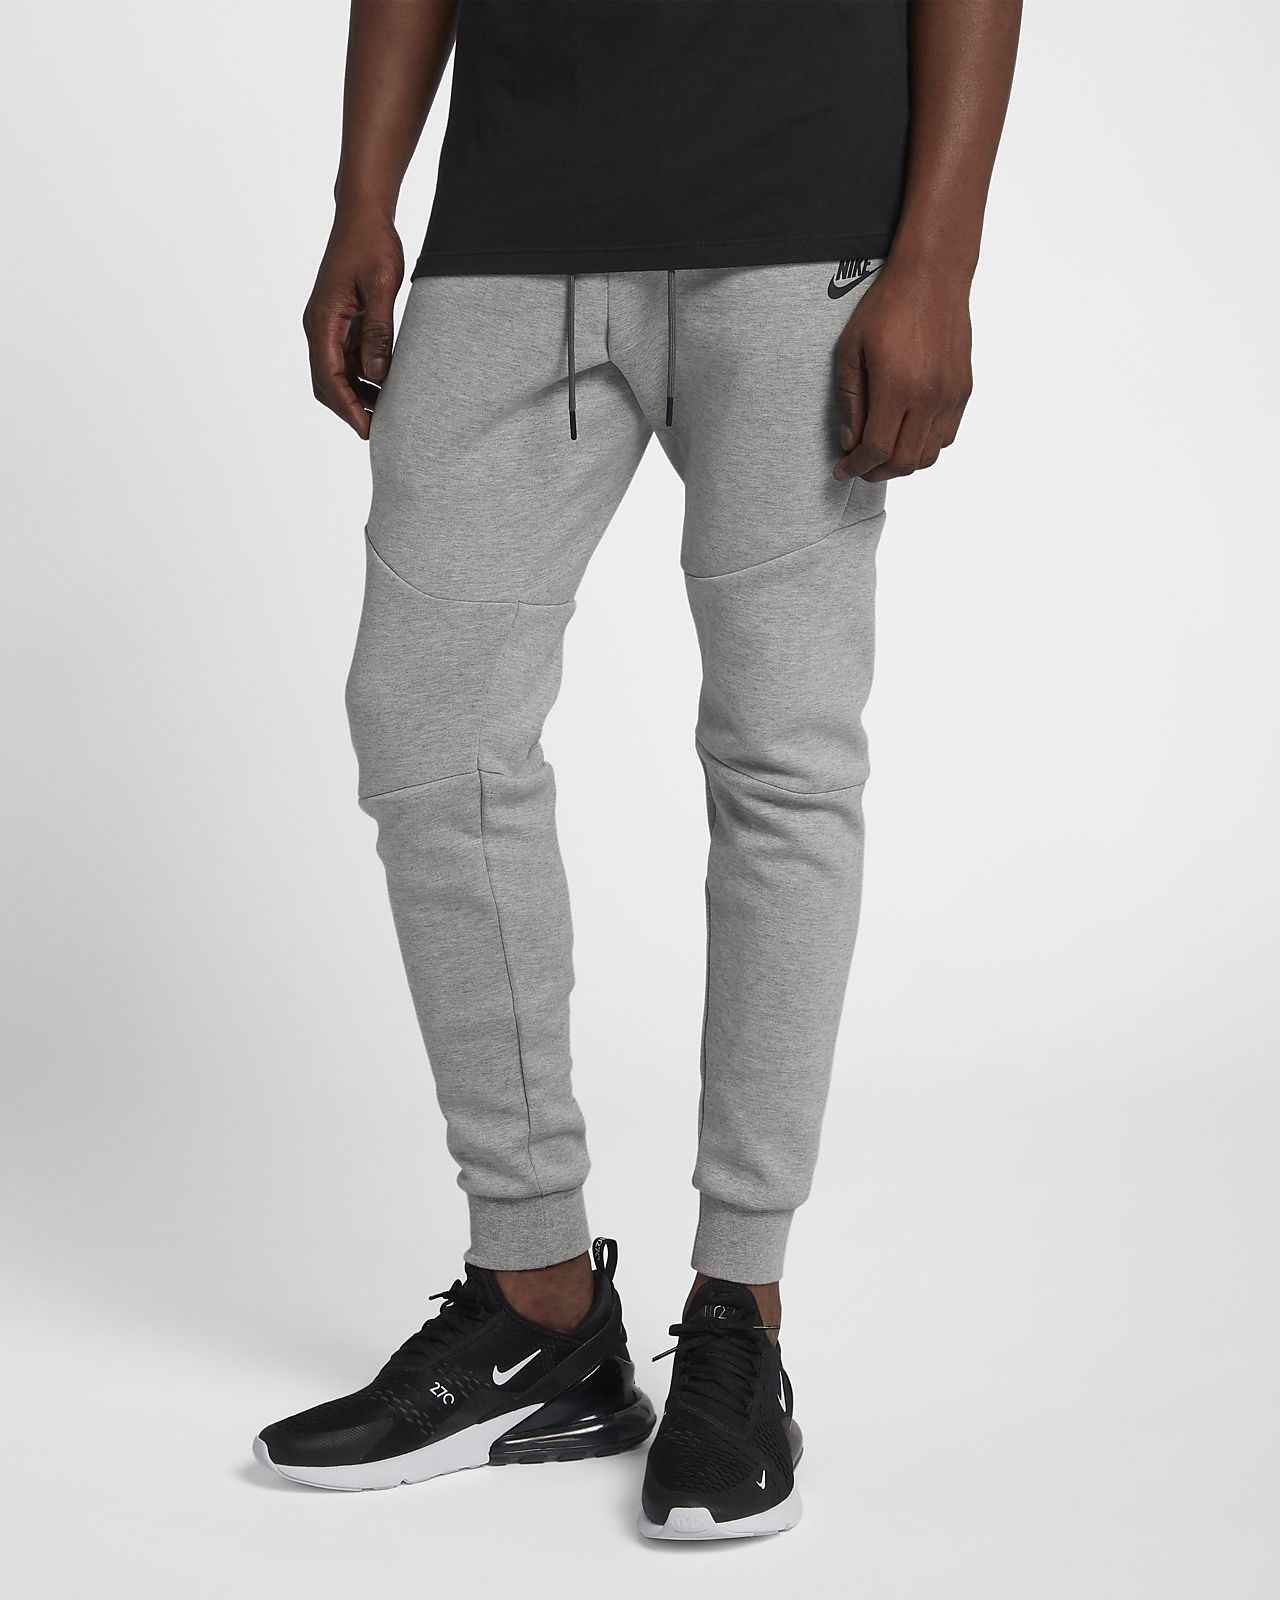 d387f1f06ee Nike Sportswear Tech Fleece Men's Joggers